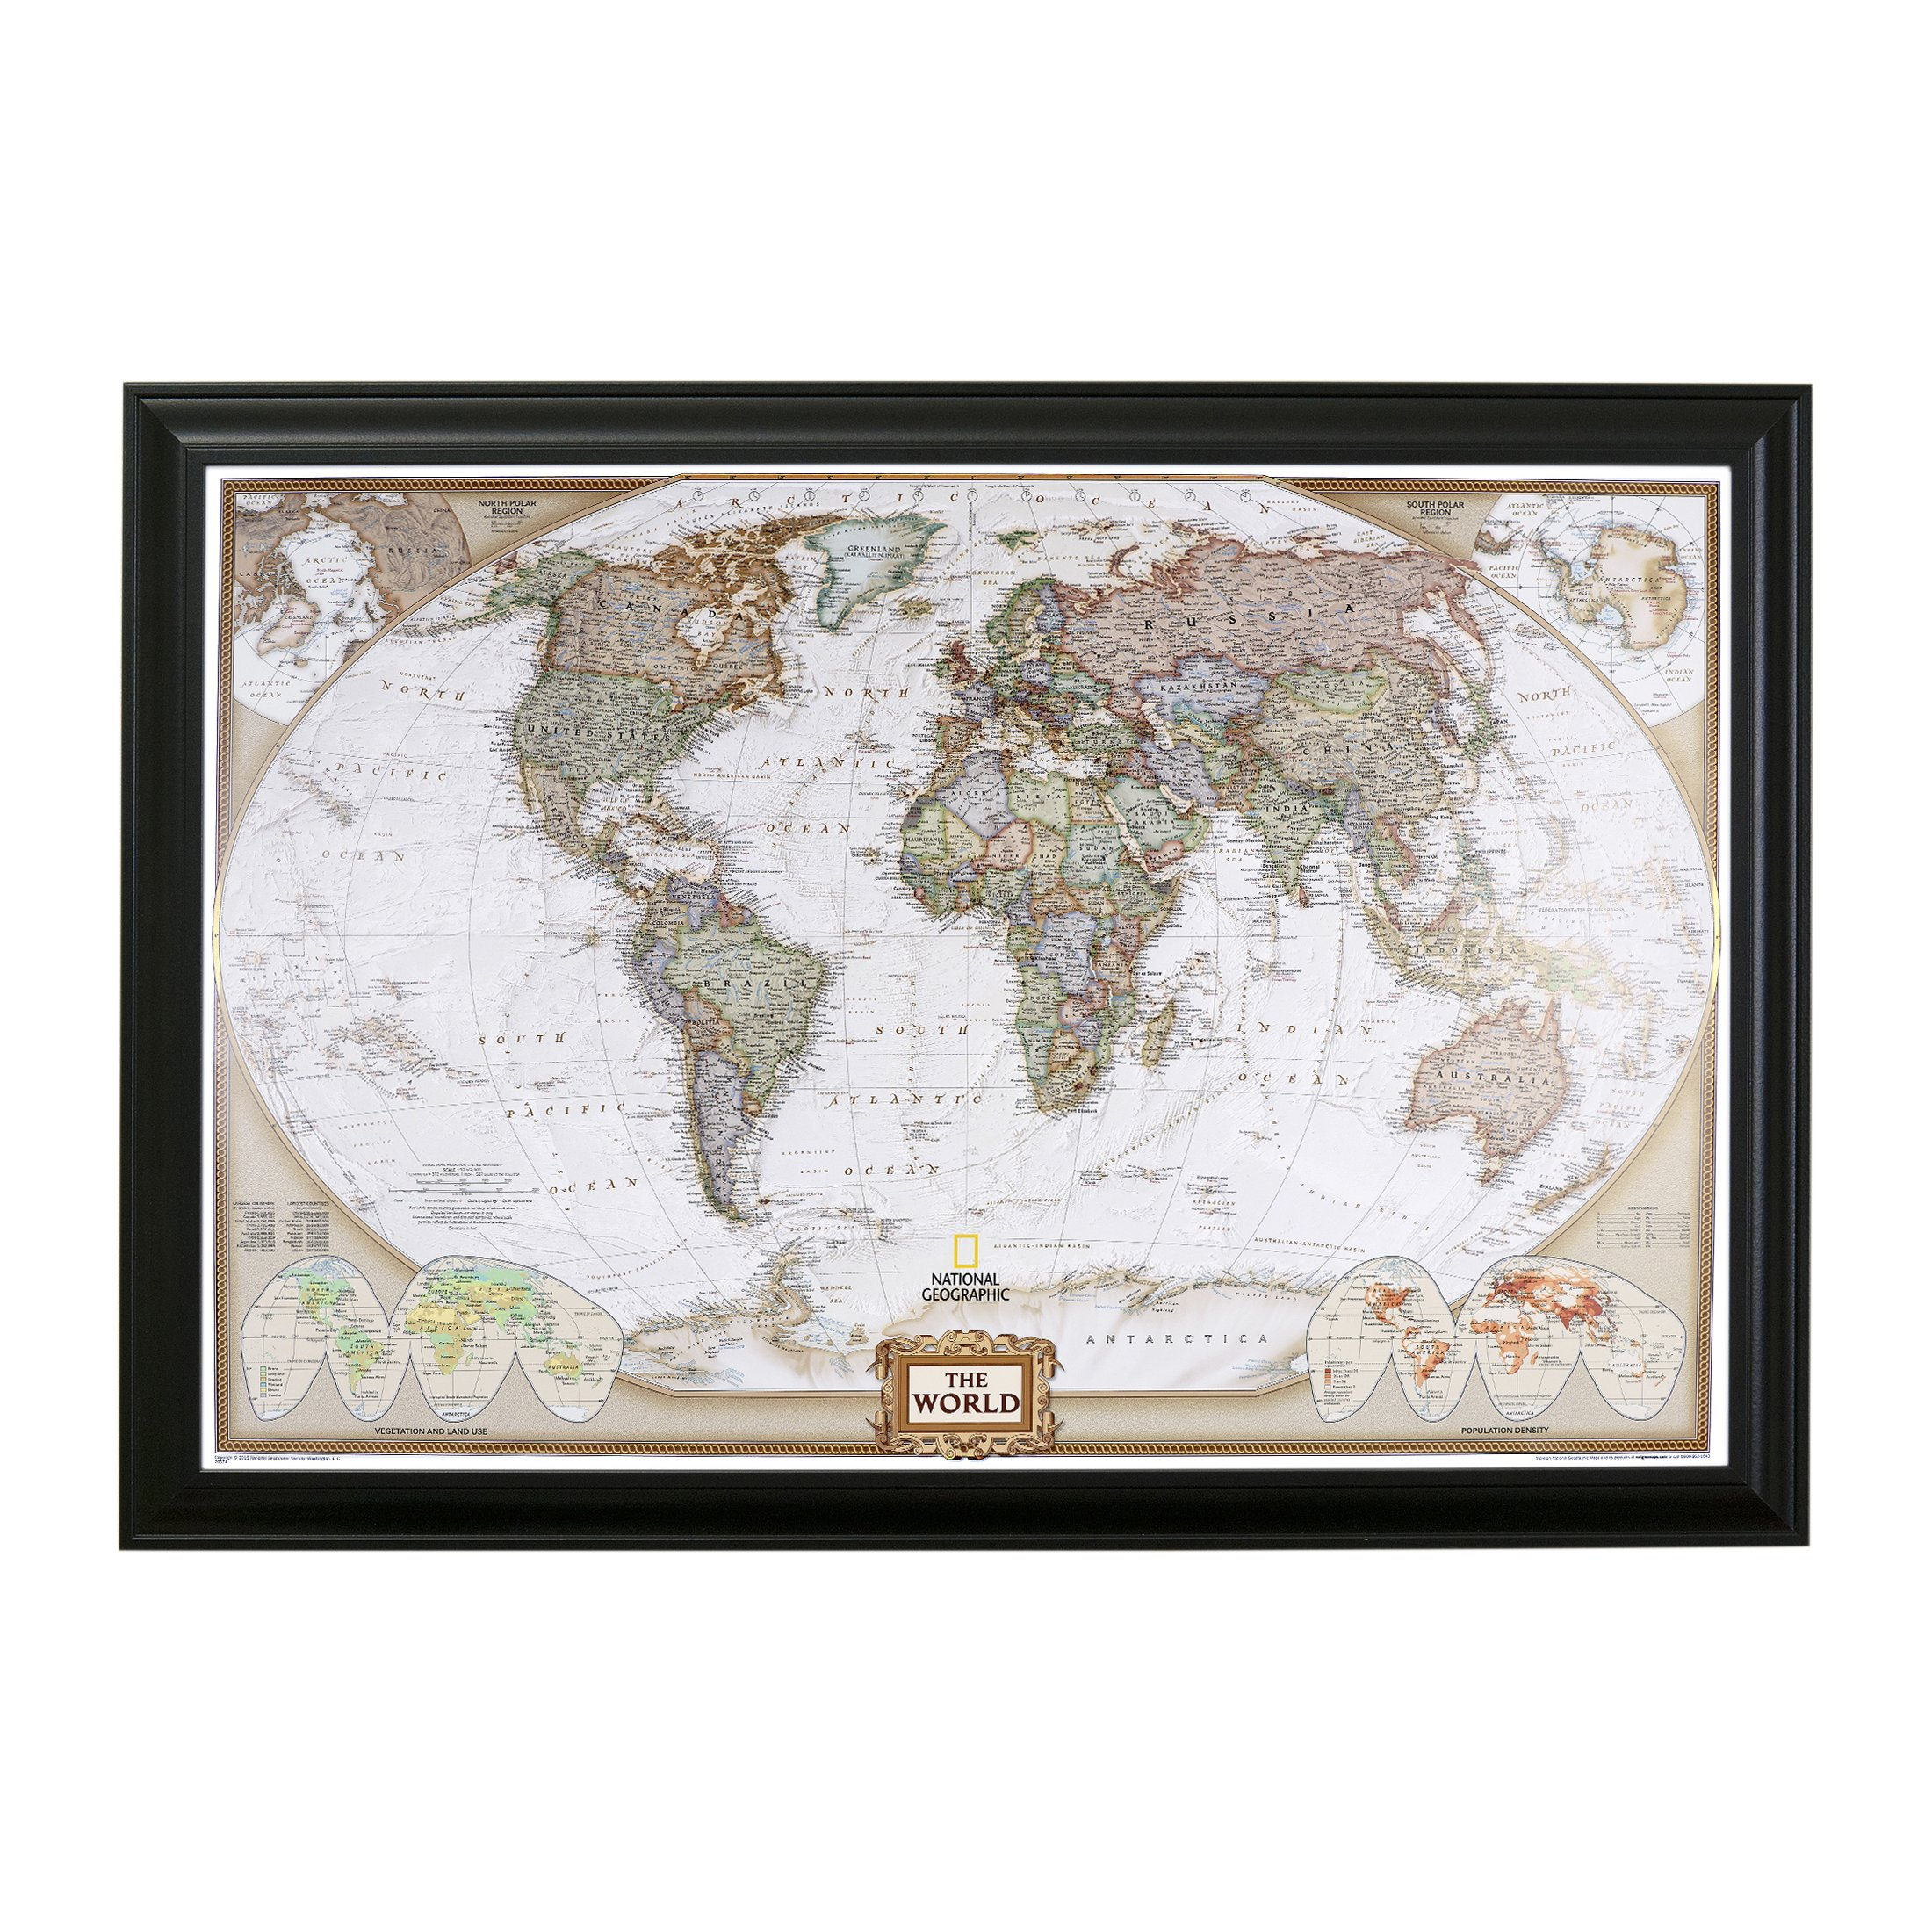 Executive World Push Pin Travel Map with Black Frame and Pins 24 x 36 by Push Pin Travel Maps